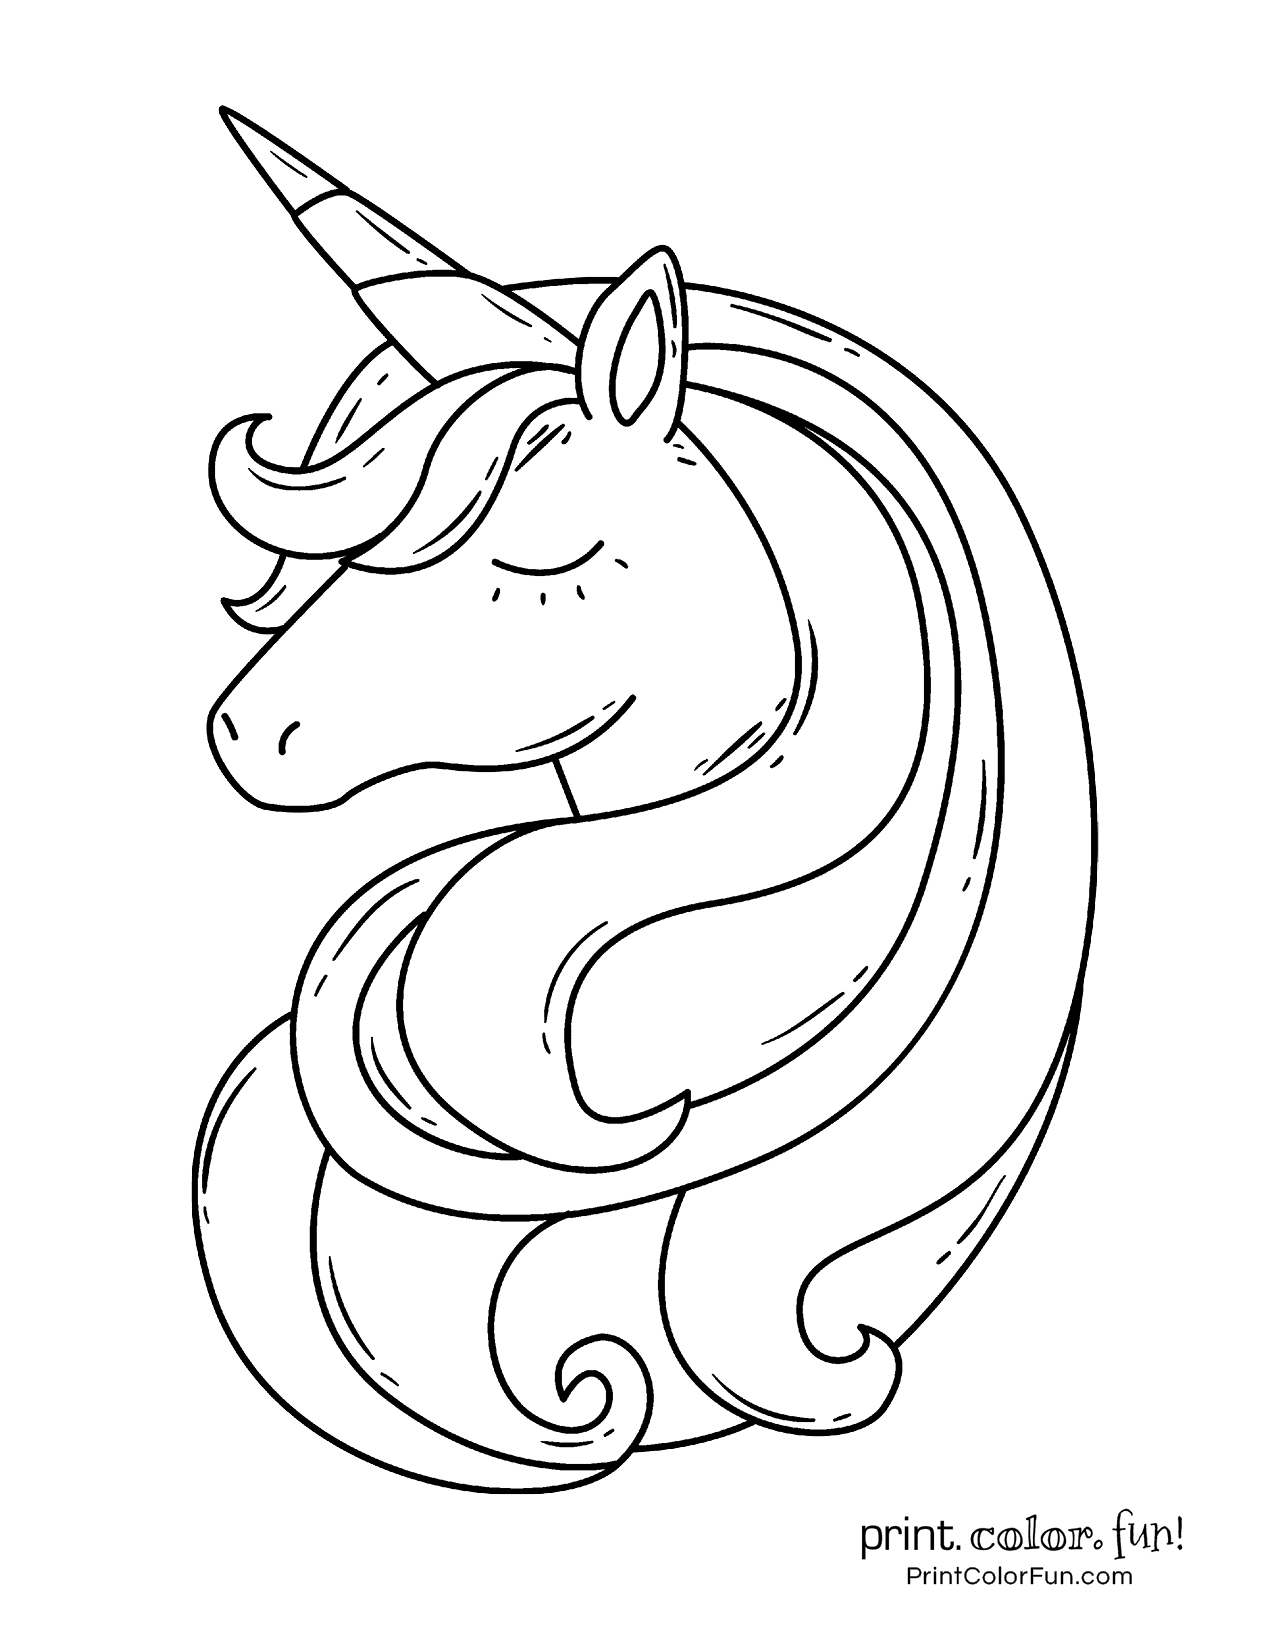 Top 50 Free Printable Unicorn Coloring Pages Unicorn Coloring Pages Unicorn Pictures Unicorn Printables